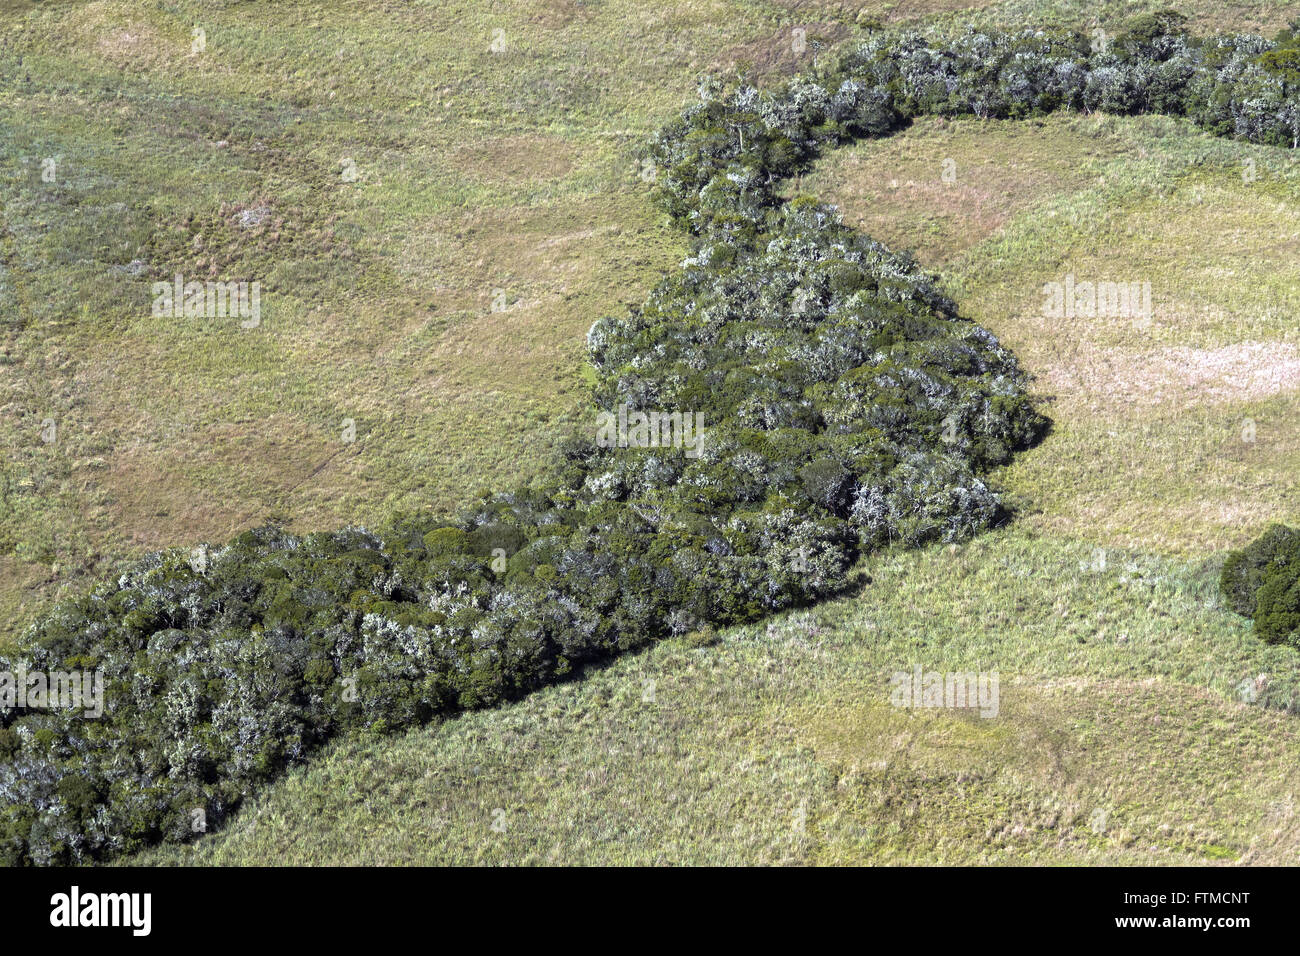 Aerial view of unspoilt countryside and capao with araucarias - Stock Image